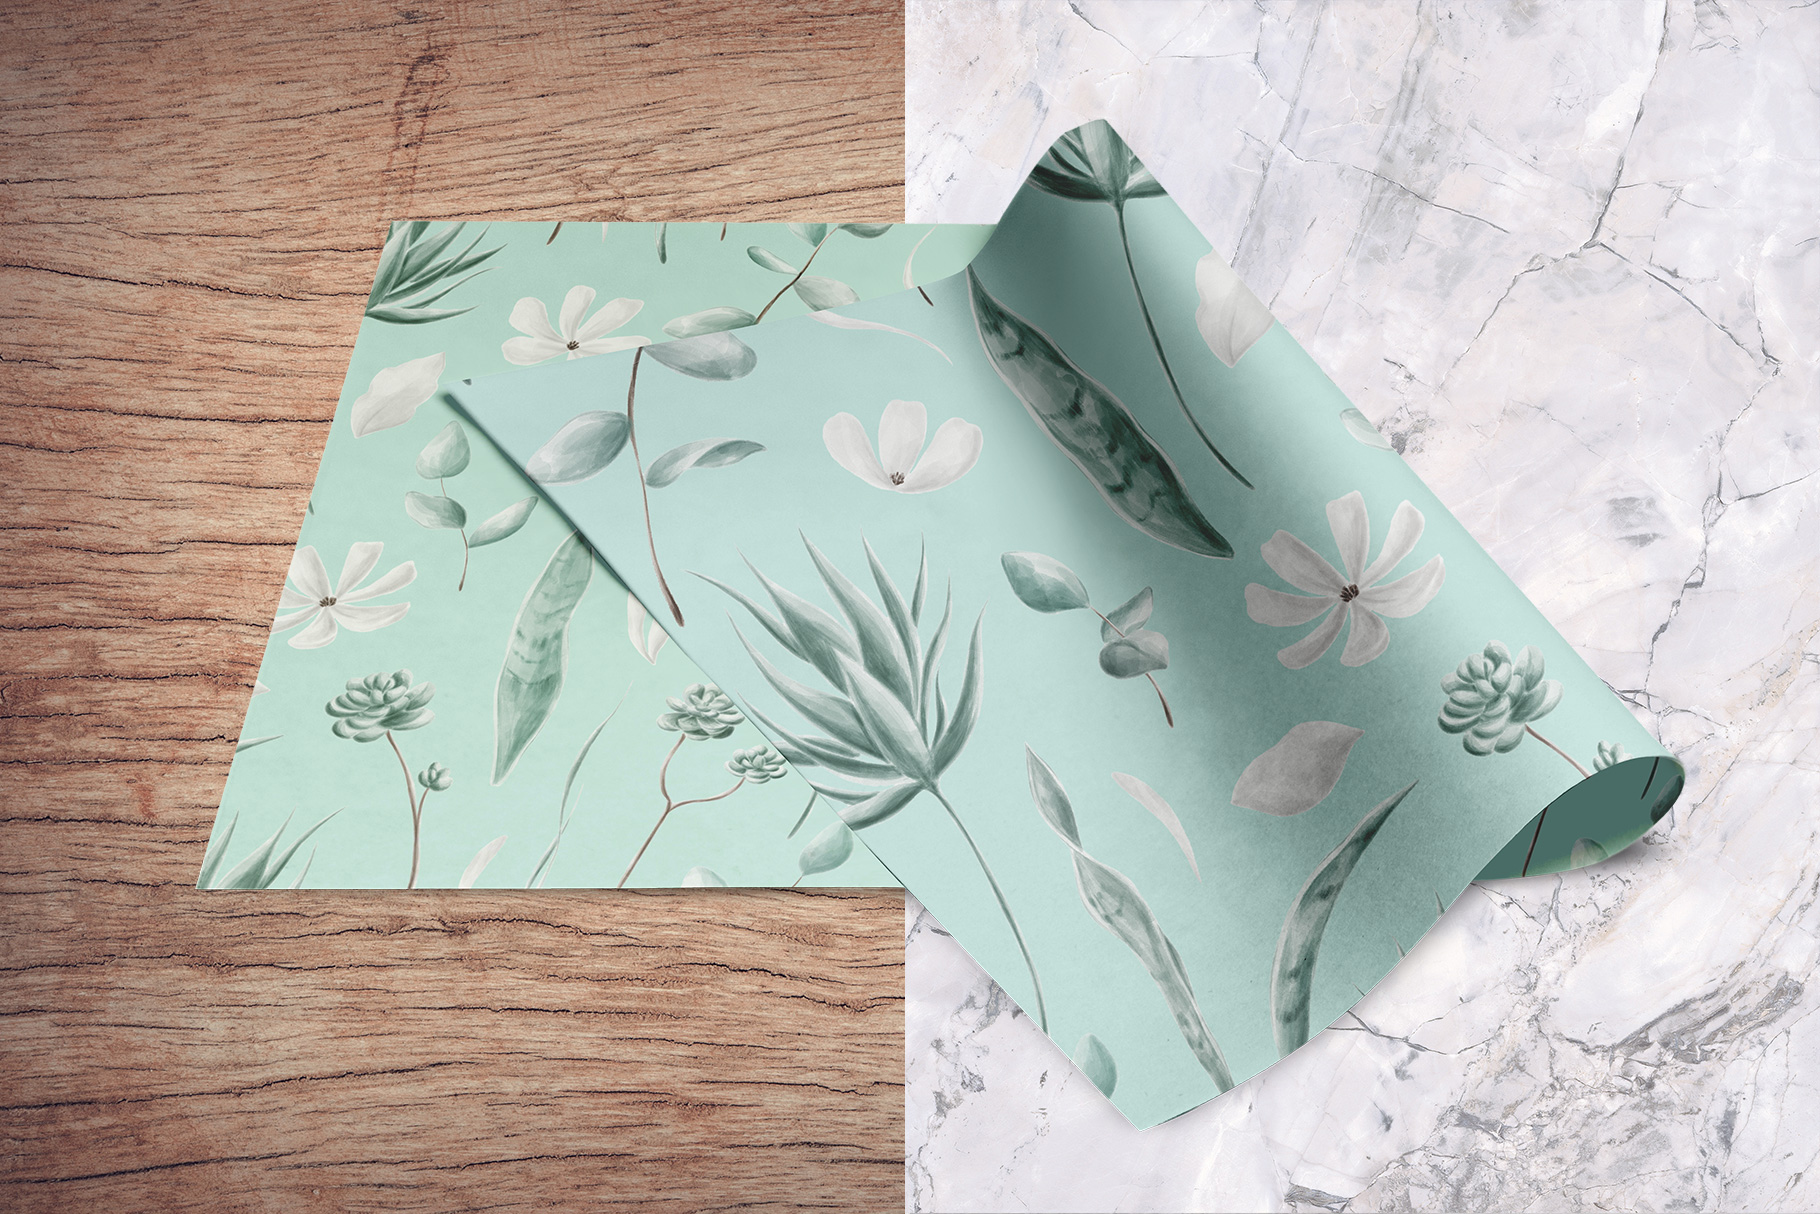 background options of the top view folded wrapping paper mockup